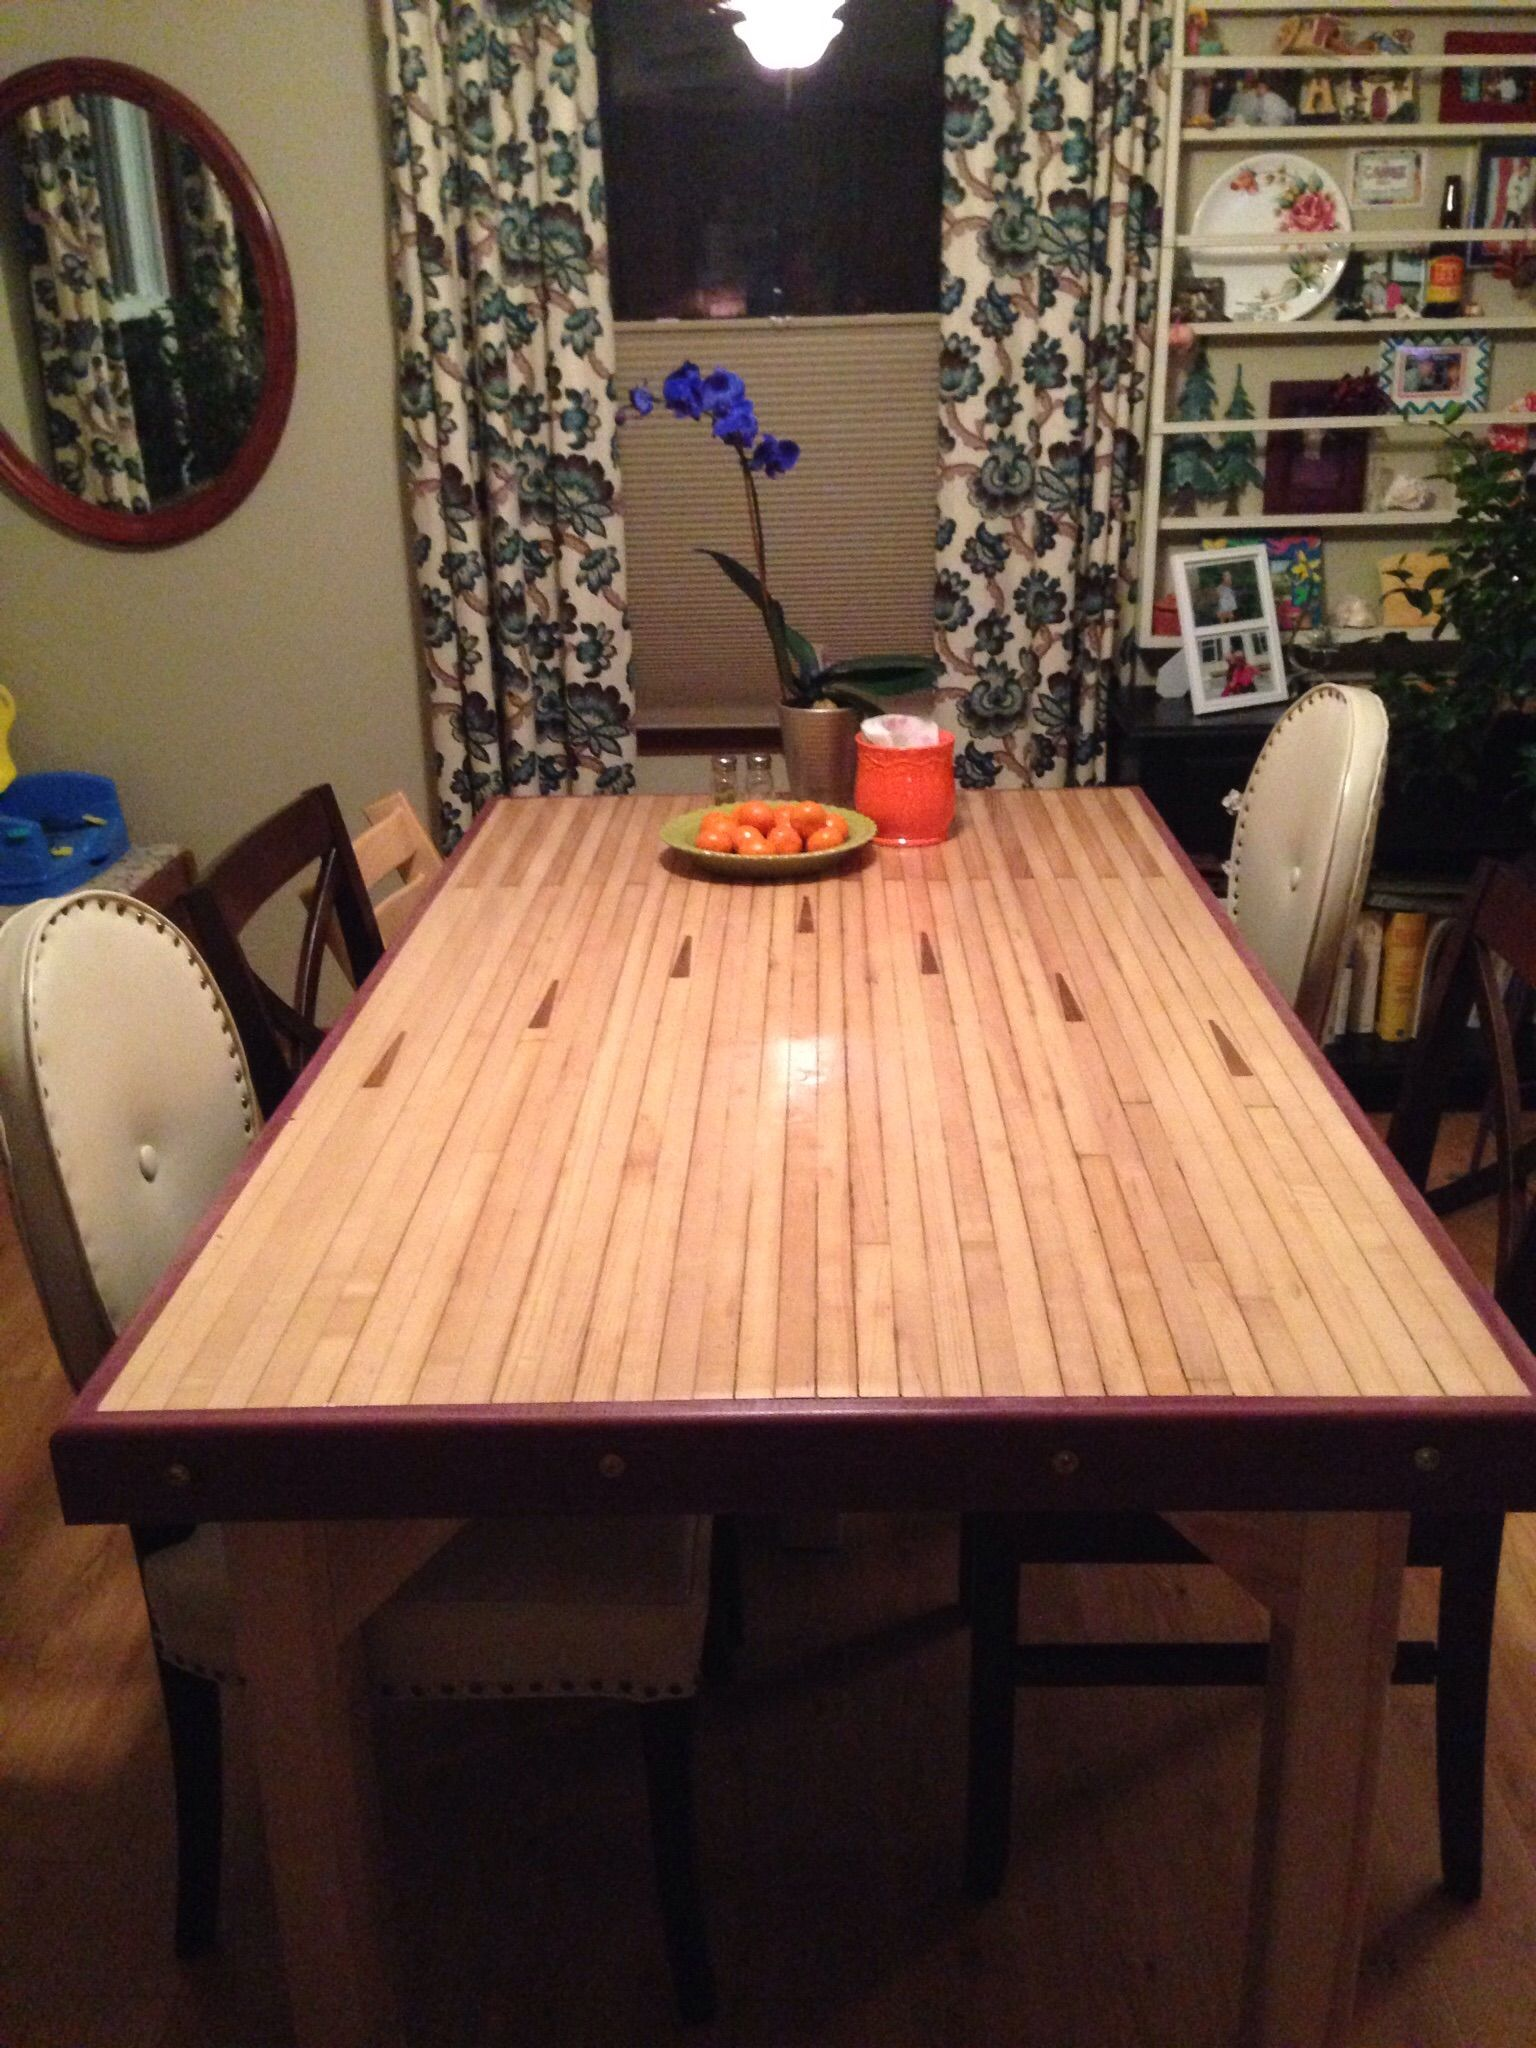 purple heart wood furniture. The Table That Kent Built. It\u0027s A Bowling Alley Lane With Purple Heart Wood Trim! Furniture C